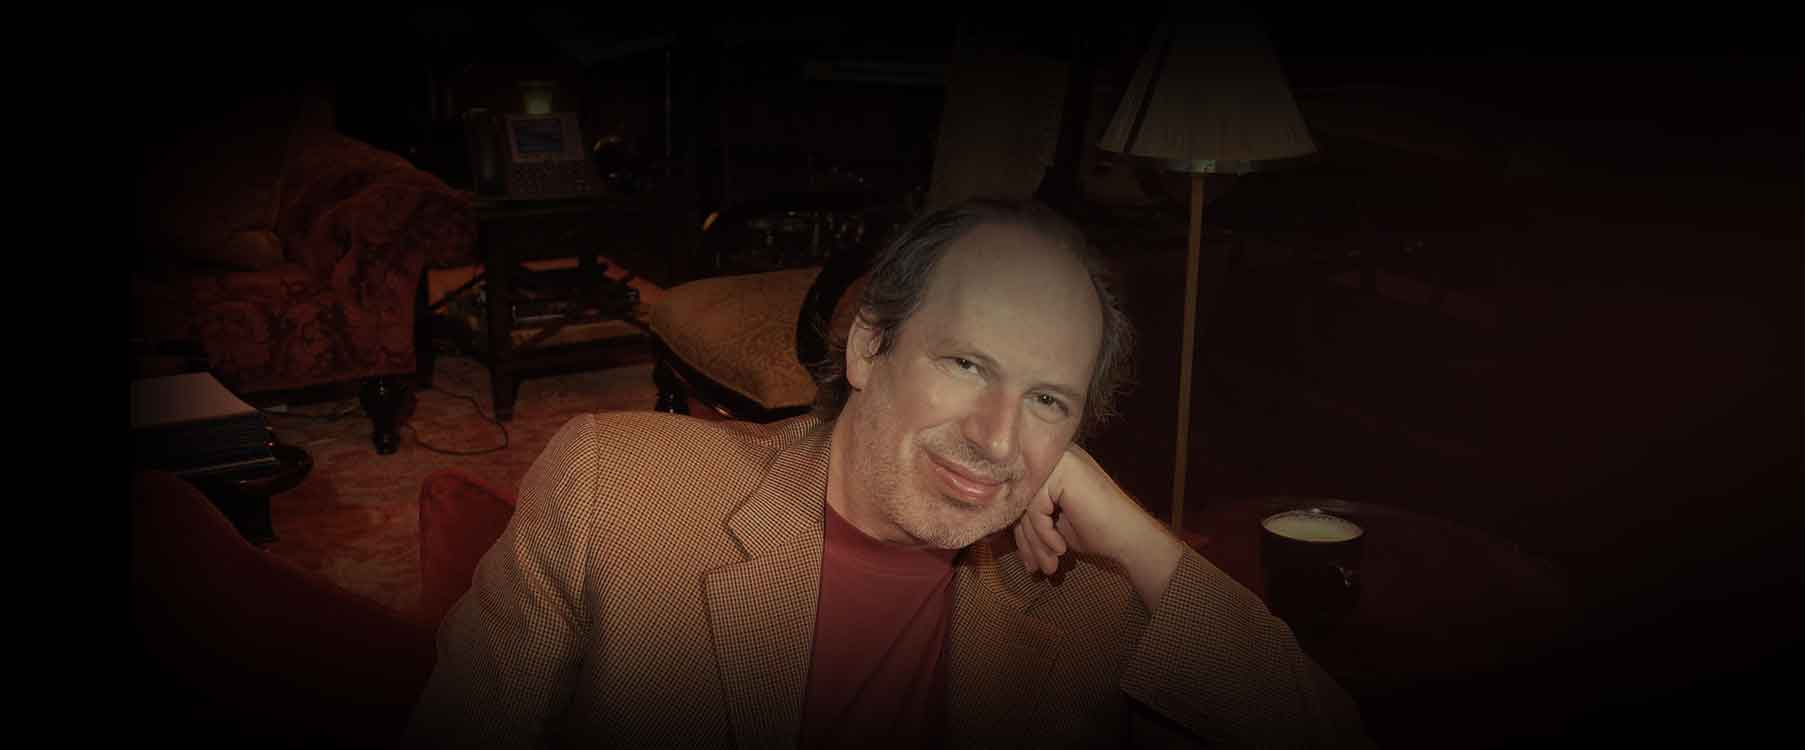 Film Composer Hans Zimmer Scores Big with UAD Powered Plug-Ins